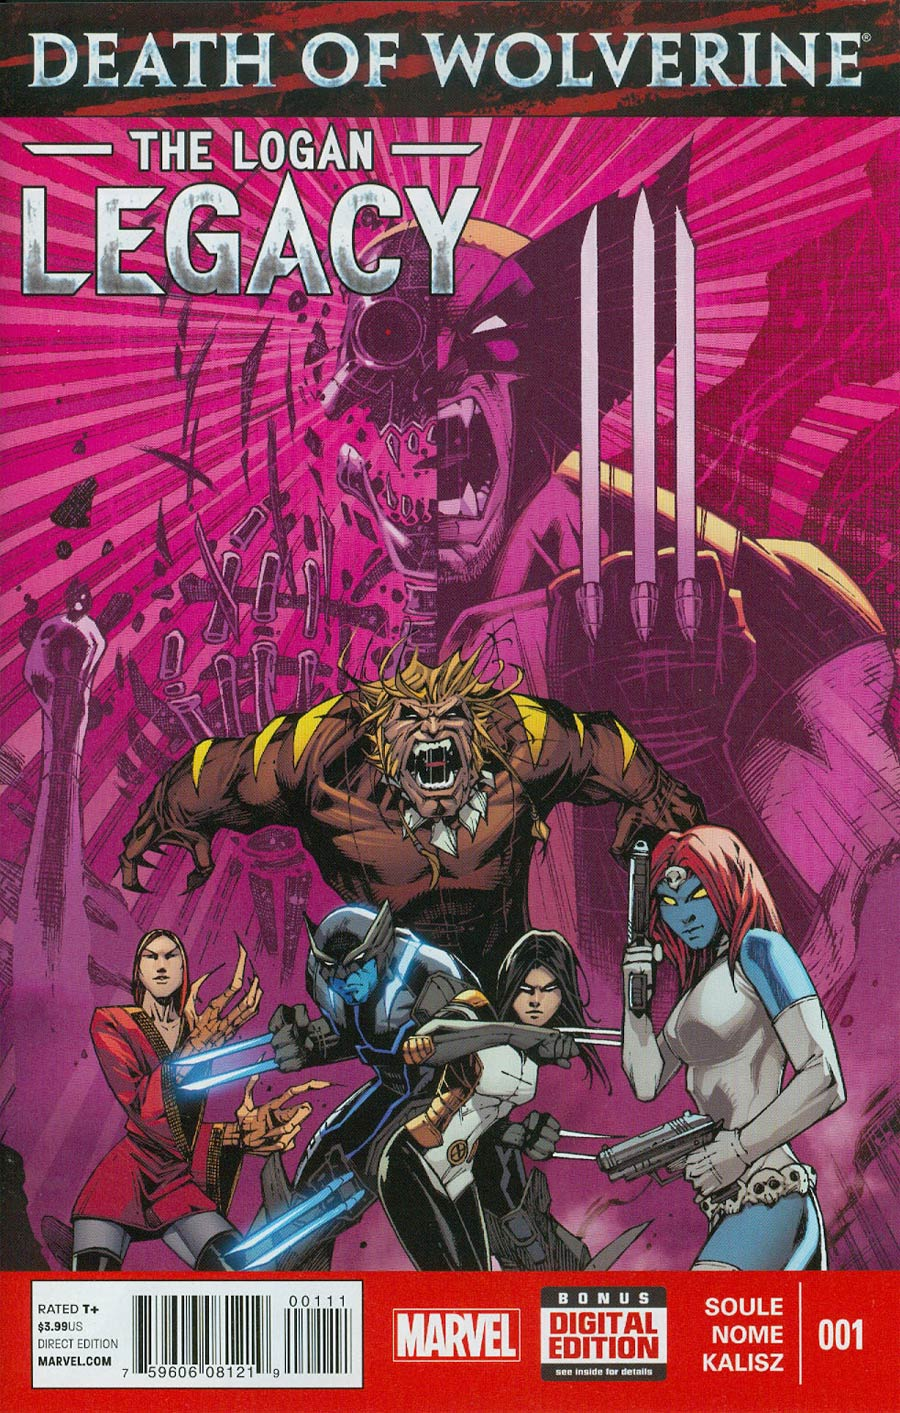 Death of Wolverine - The Logan Legacy 1 - Issue 1